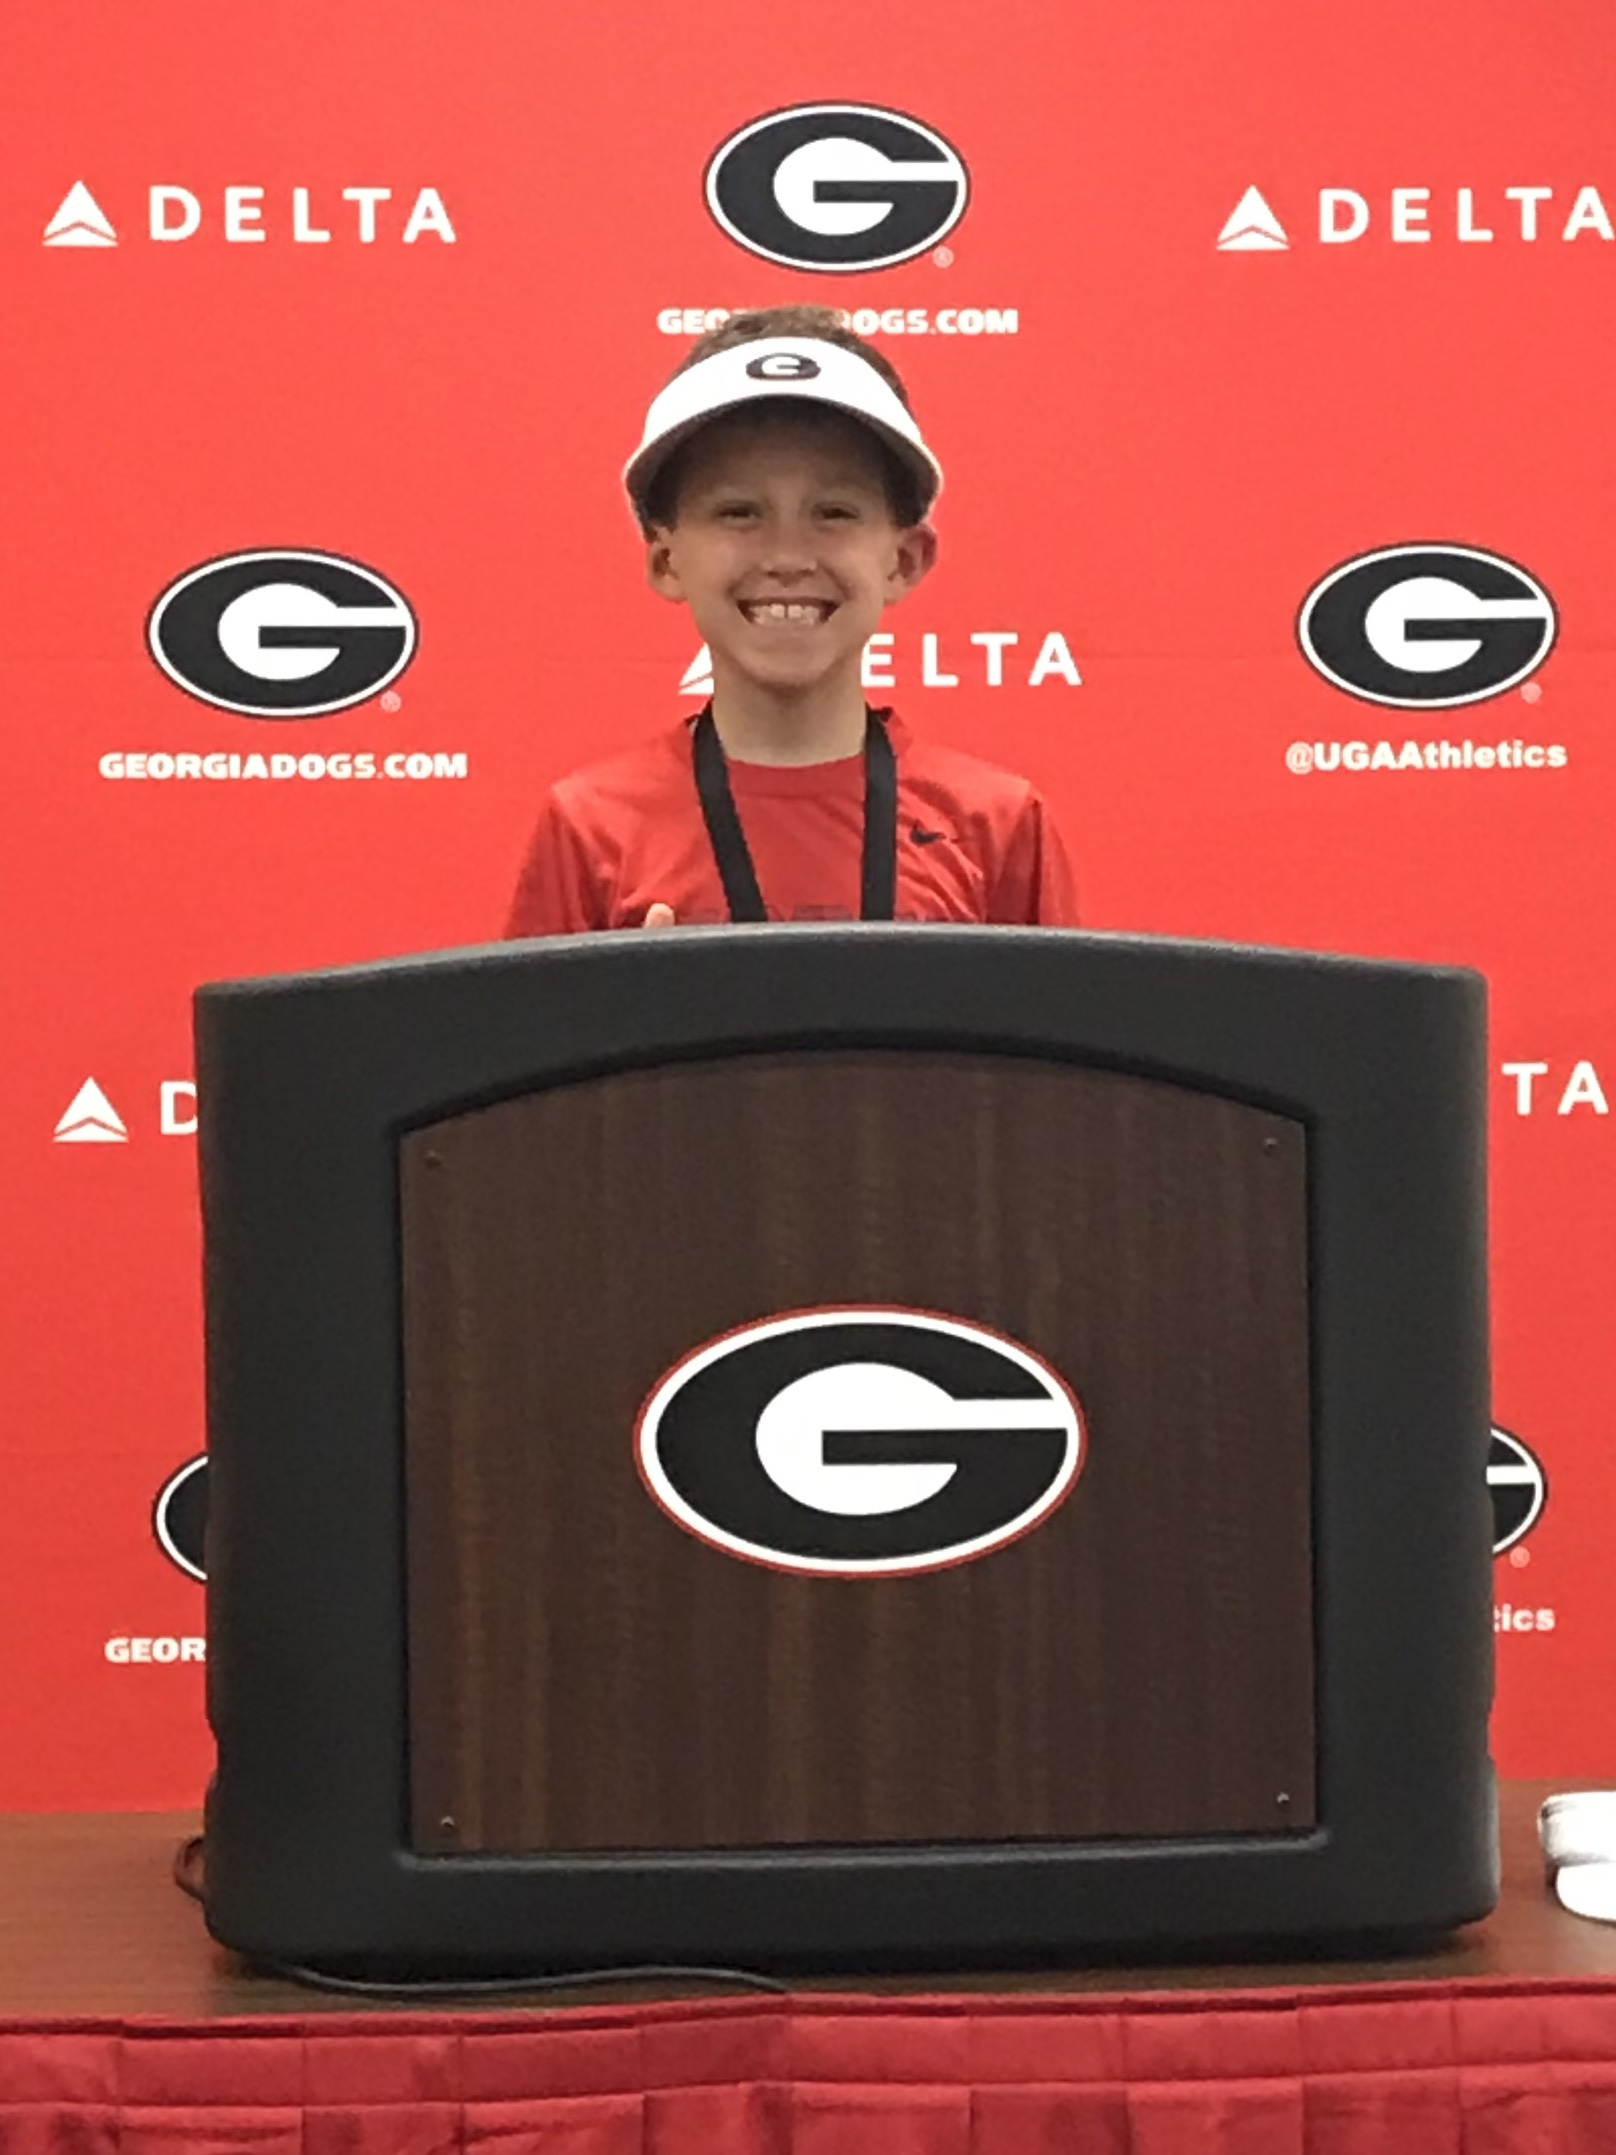 Jim Coleman (9) - Wide Receiver - At the podium, where Coach Smart gives his post game interviews, even wearing the visor to mimic Coach.